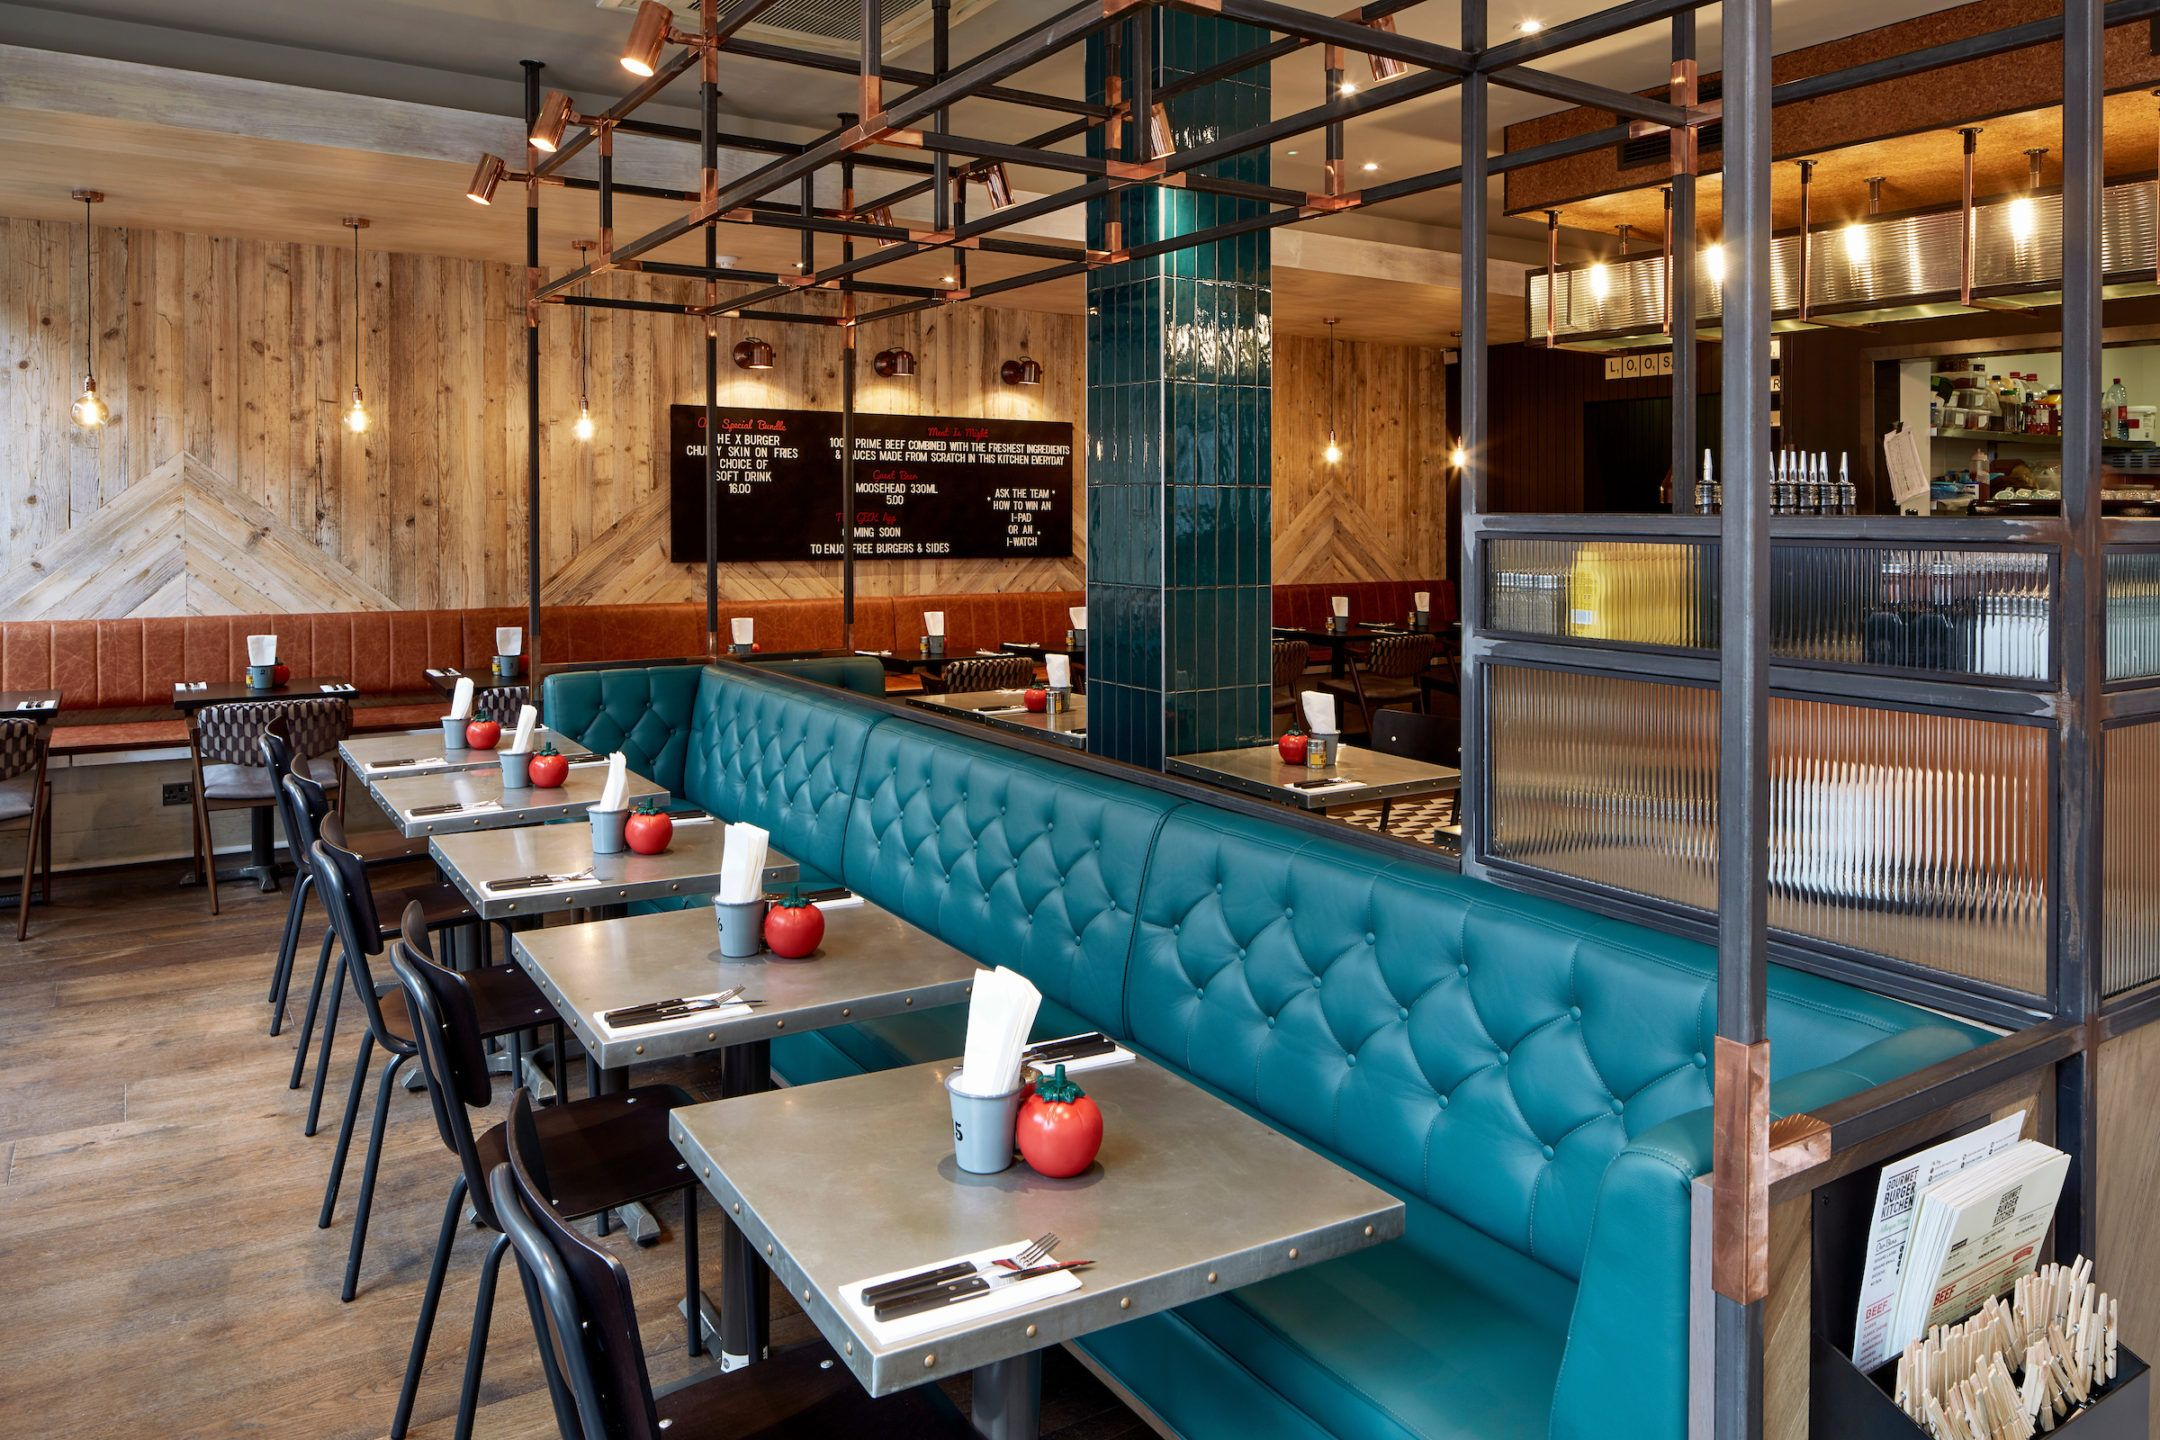 Bespoke Restaurant Seating GBK Dublin Temple Bar